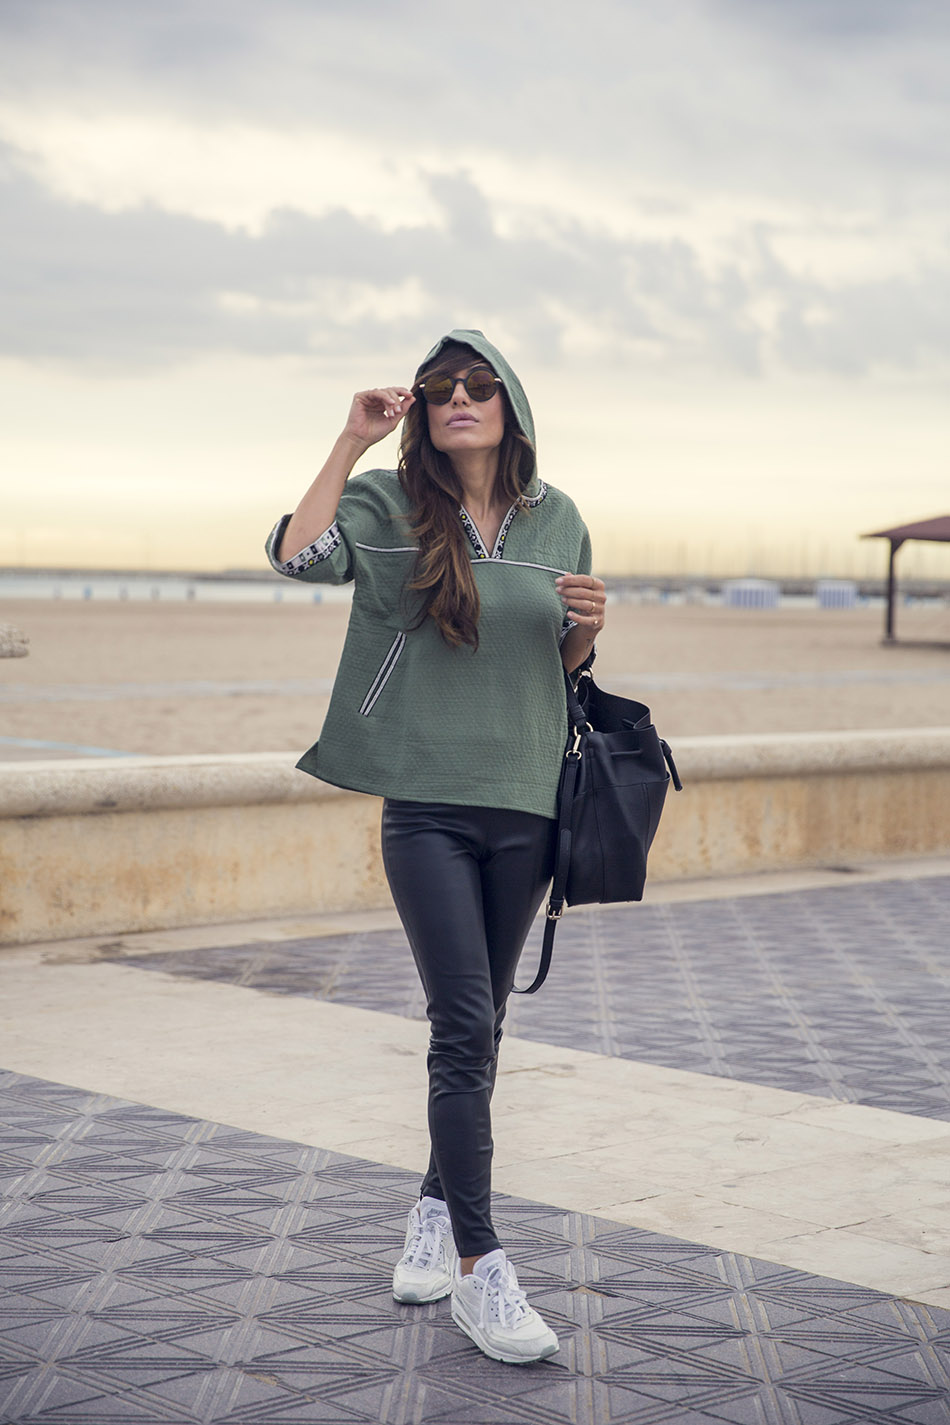 street-style-october-2016-outfits-review-barbara-crespo-06